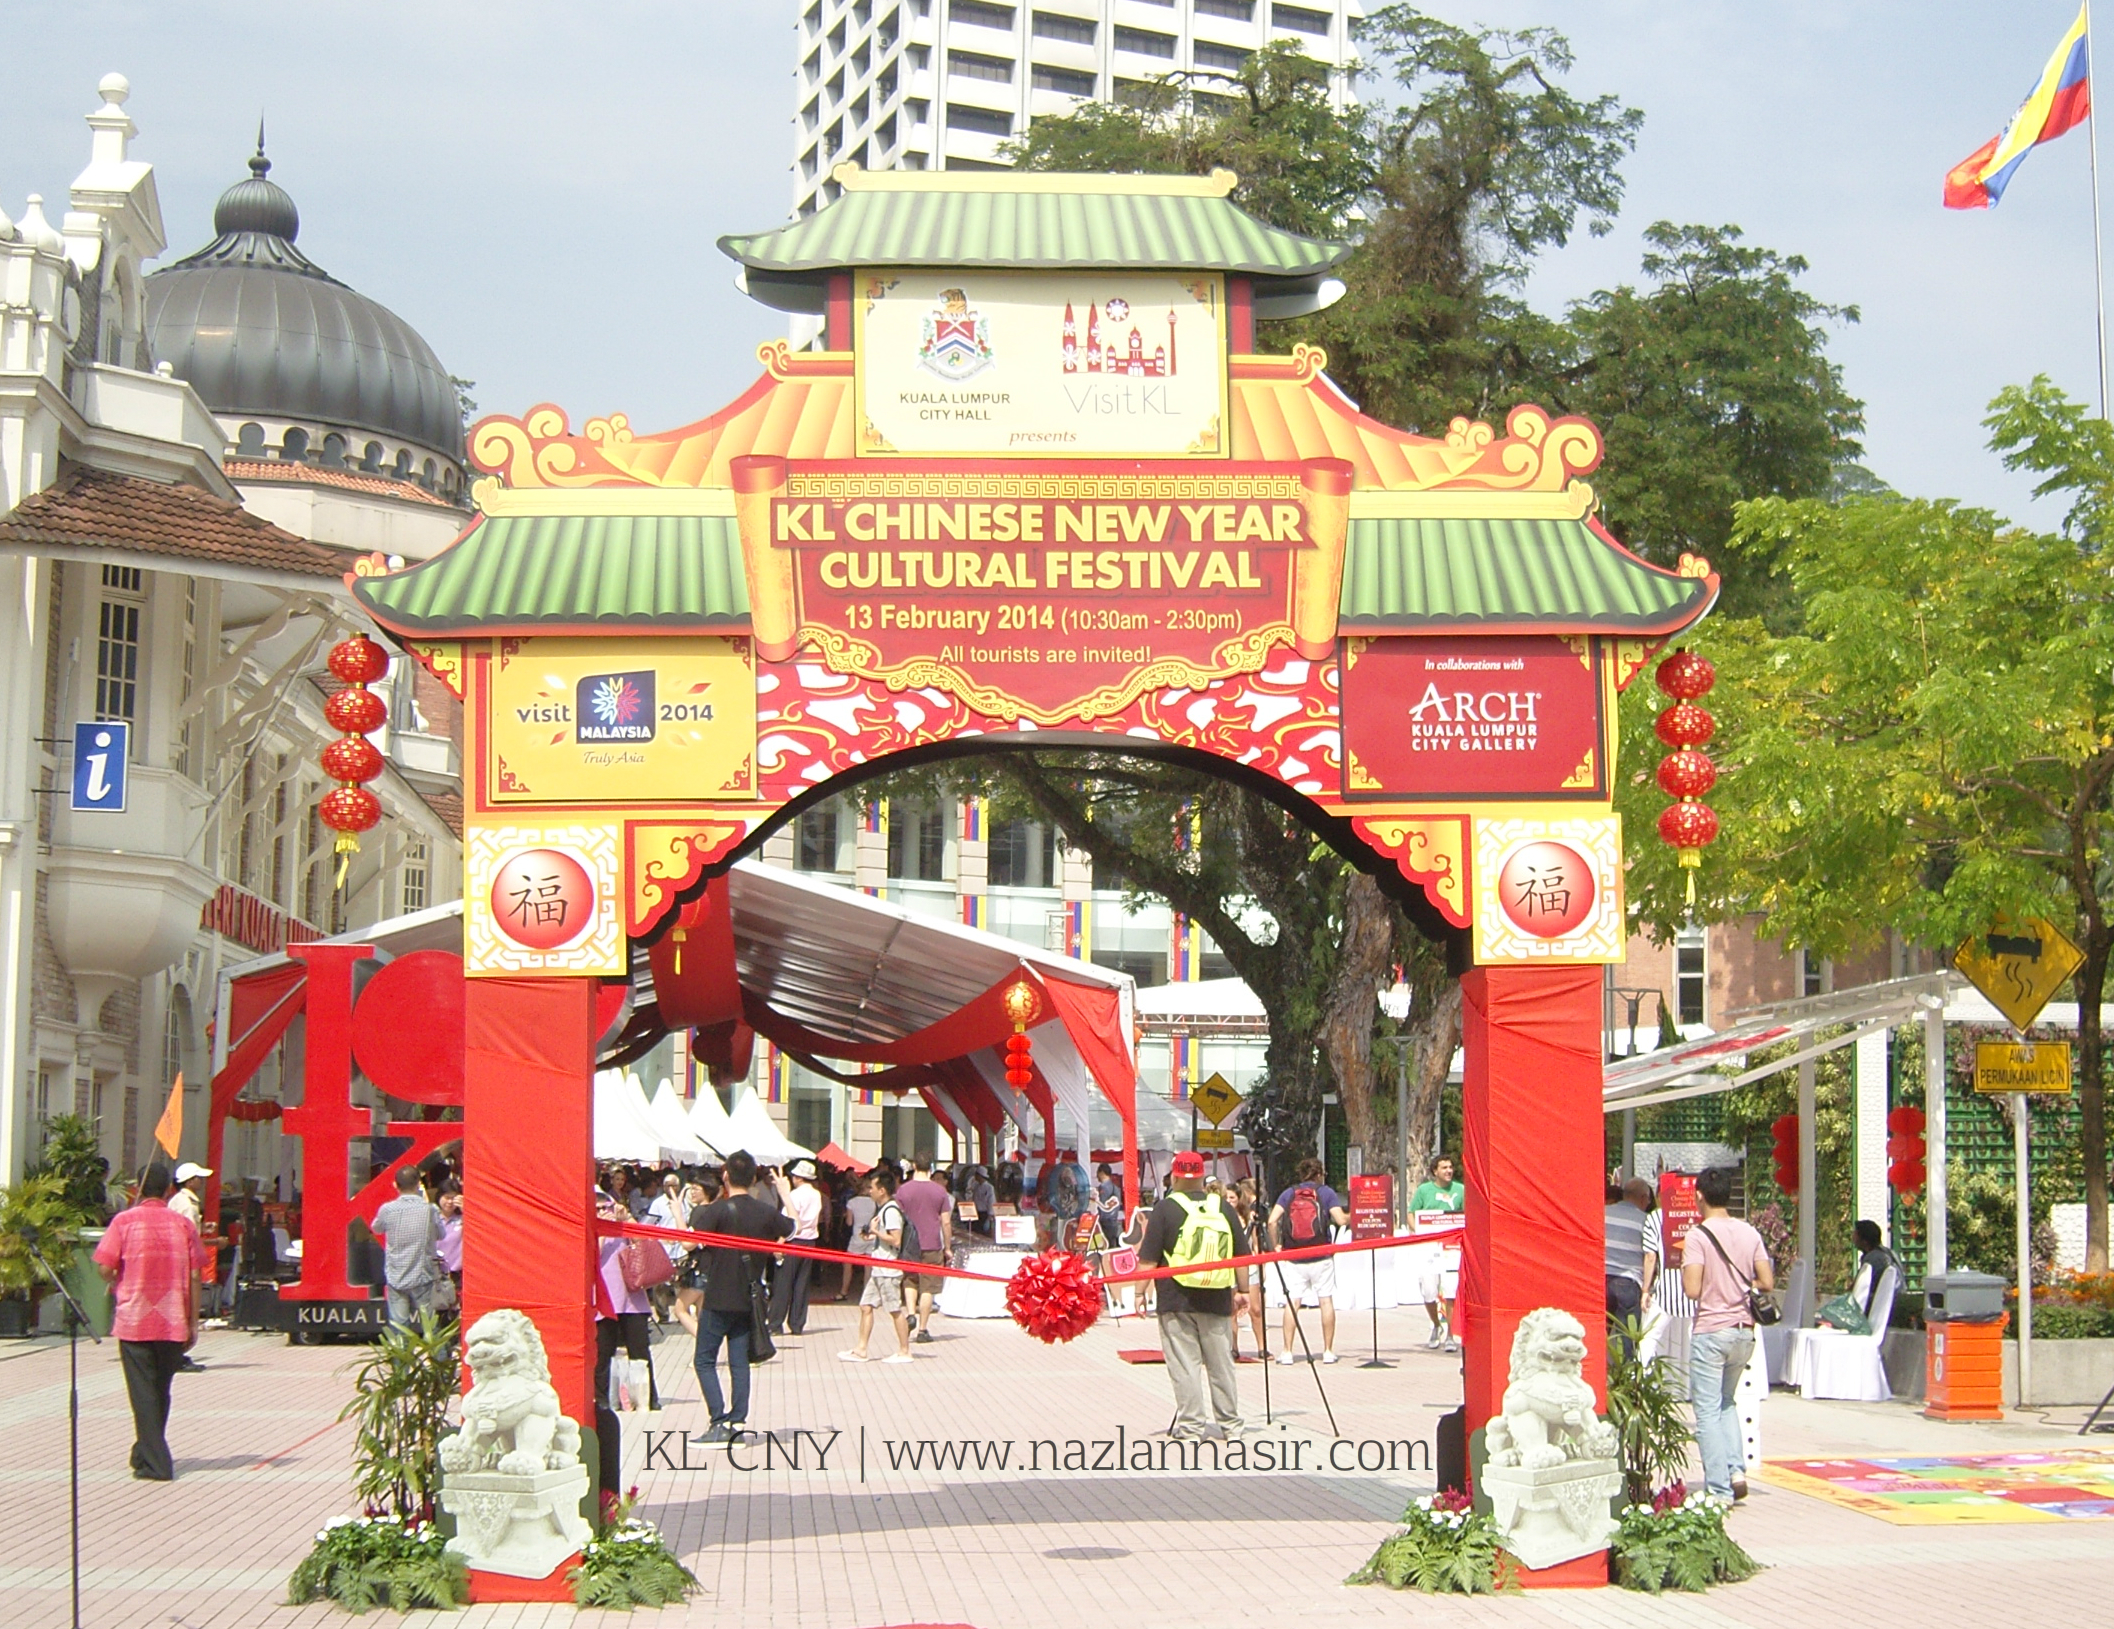 Welcome To KL Chinese New Year Cultural Festival